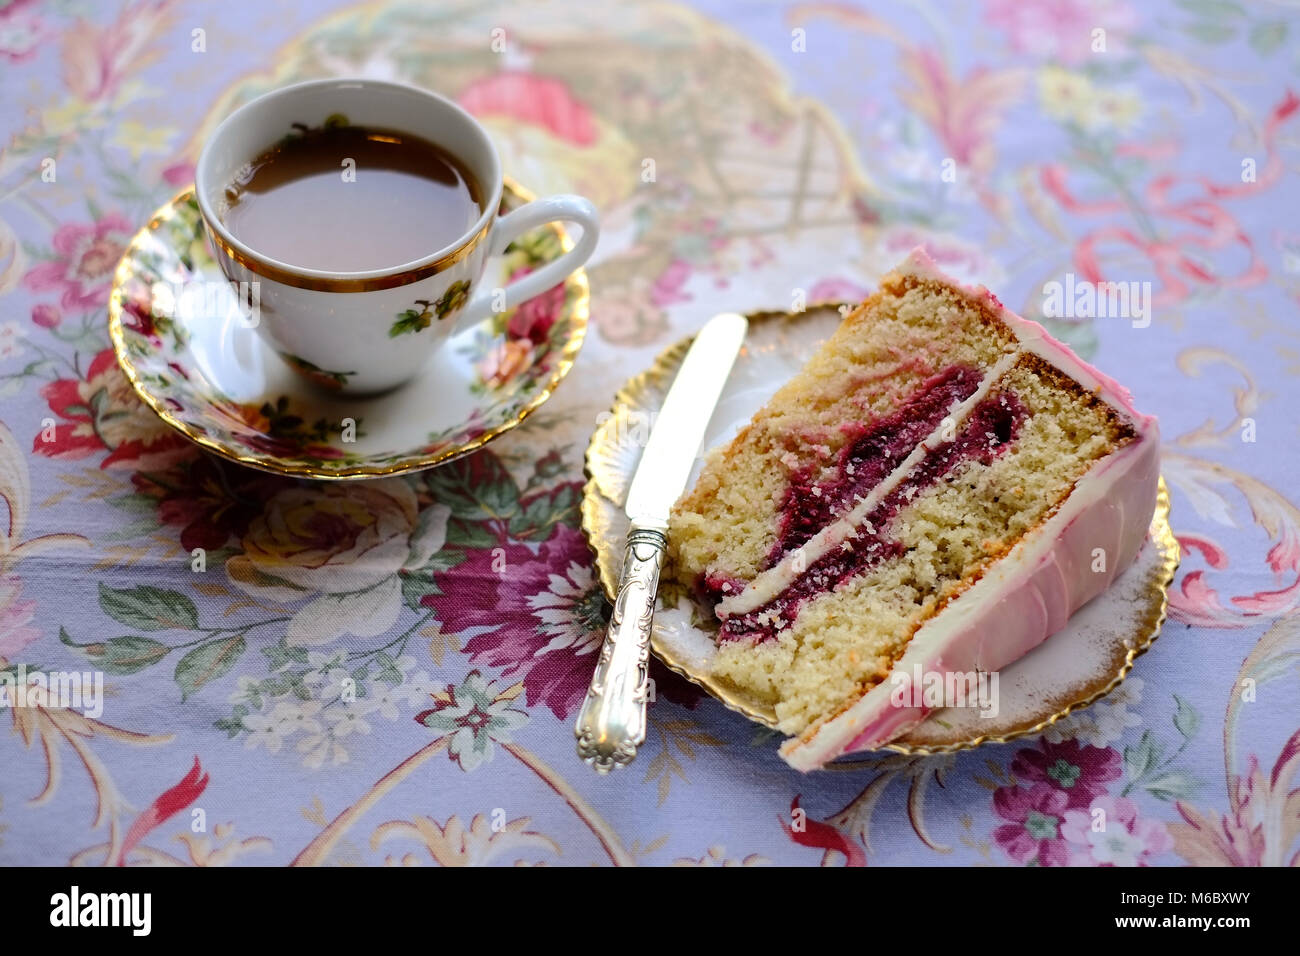 Afternoon tea and cake at Heavenly Chocolate Emporium & Cafe, Llandeilo, Carmarthenshire, Wales - Stock Image